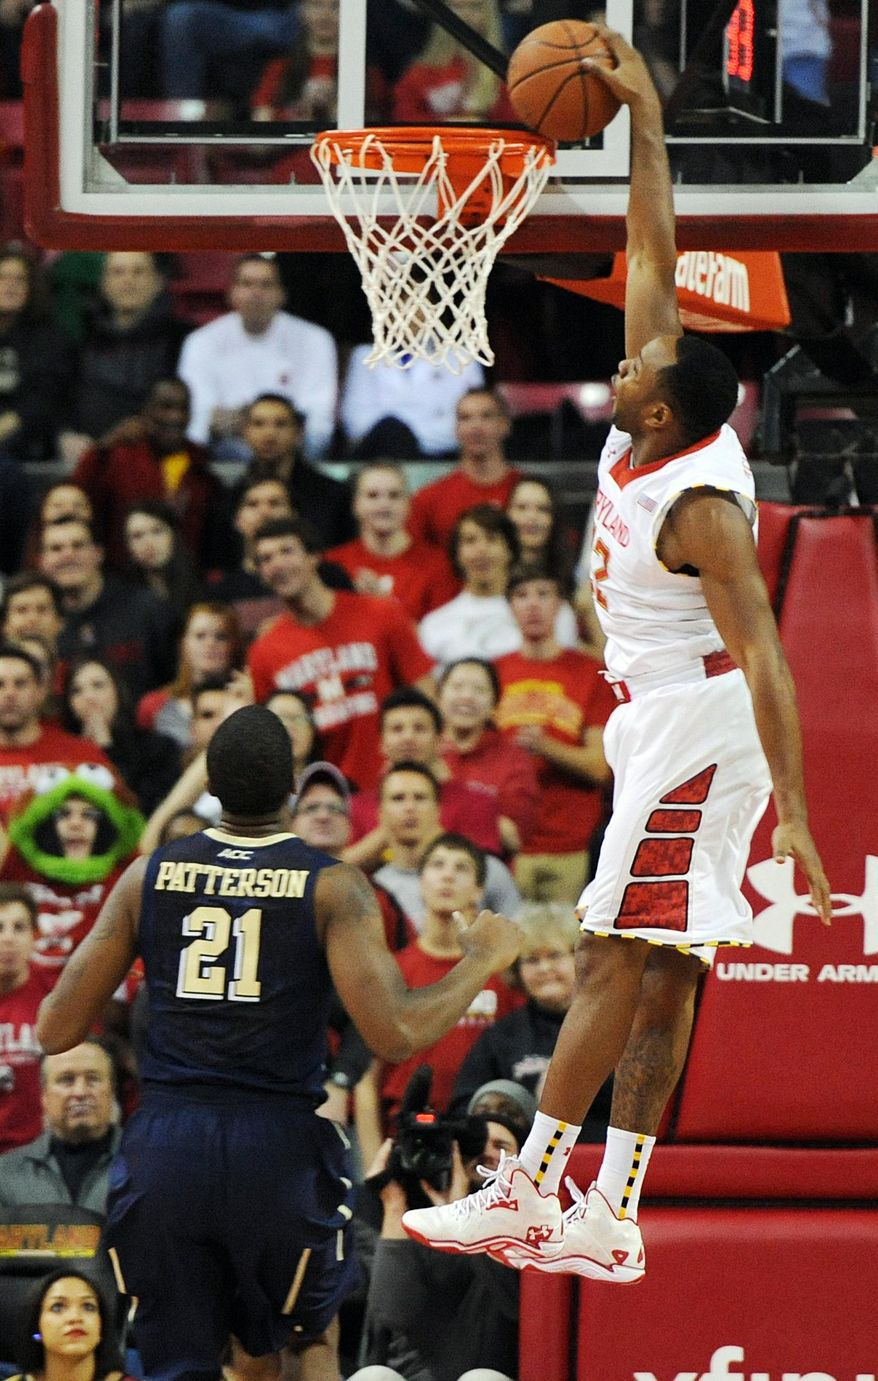 Maryland's Dez Wells, right, scores as Pittsburgh's Lamar Patterson stands near in the first half of an NCAA college basketball game Saturday, Jan. 25, 2014, in College Park, Md. (AP Photo/Gail Burton)